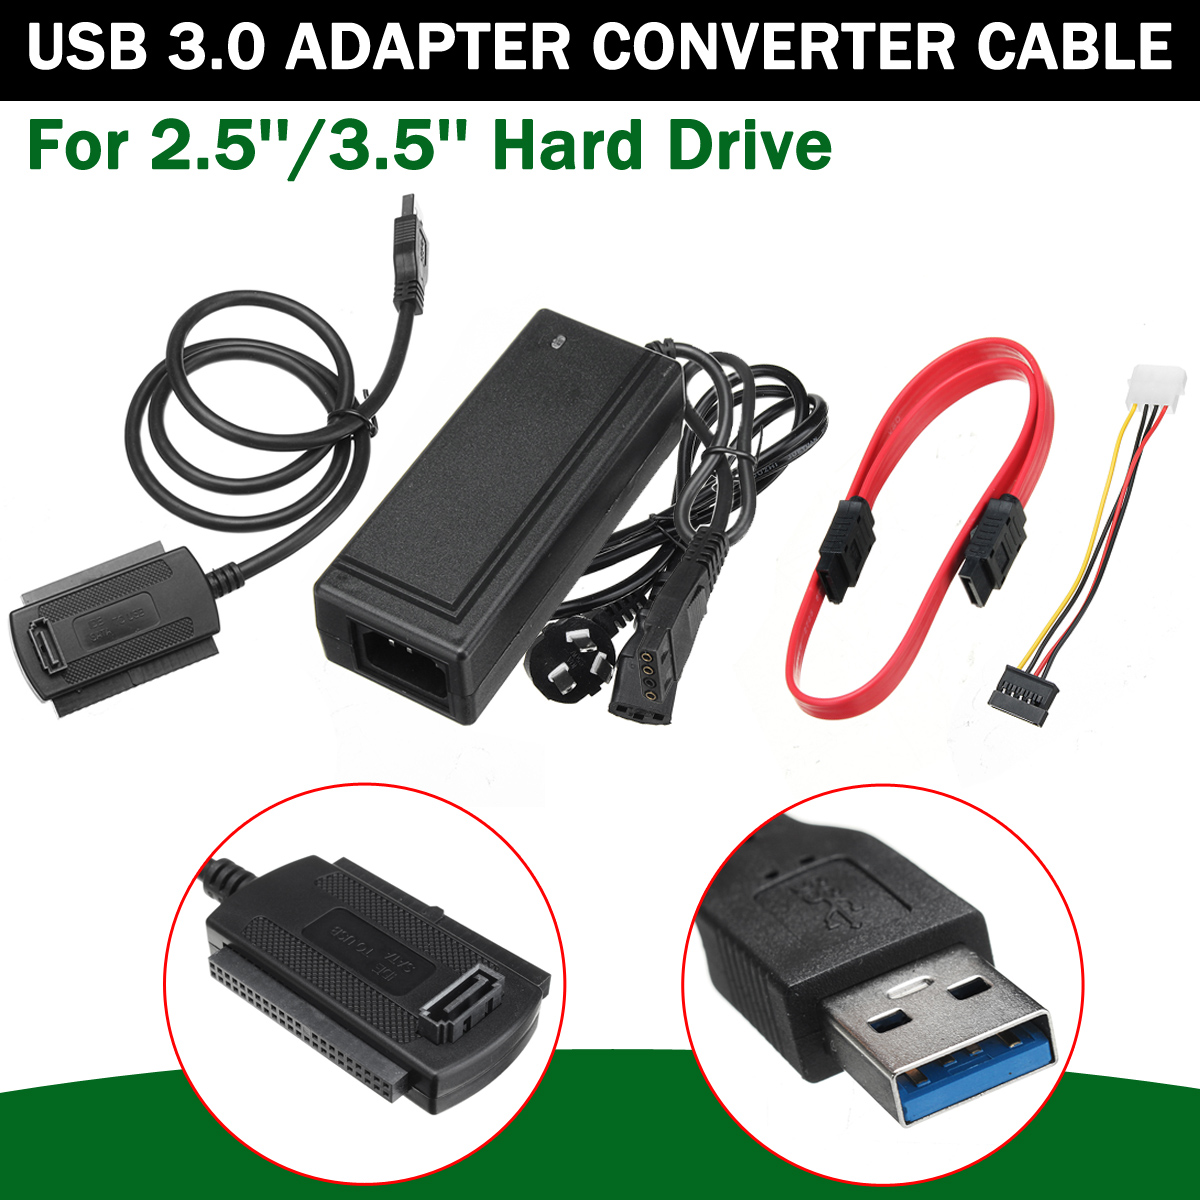 USB 3.0 to IDE/SATA Adapter Converter Cable For 2.5''/3.5'' SATA IDE Hard Drive HDD